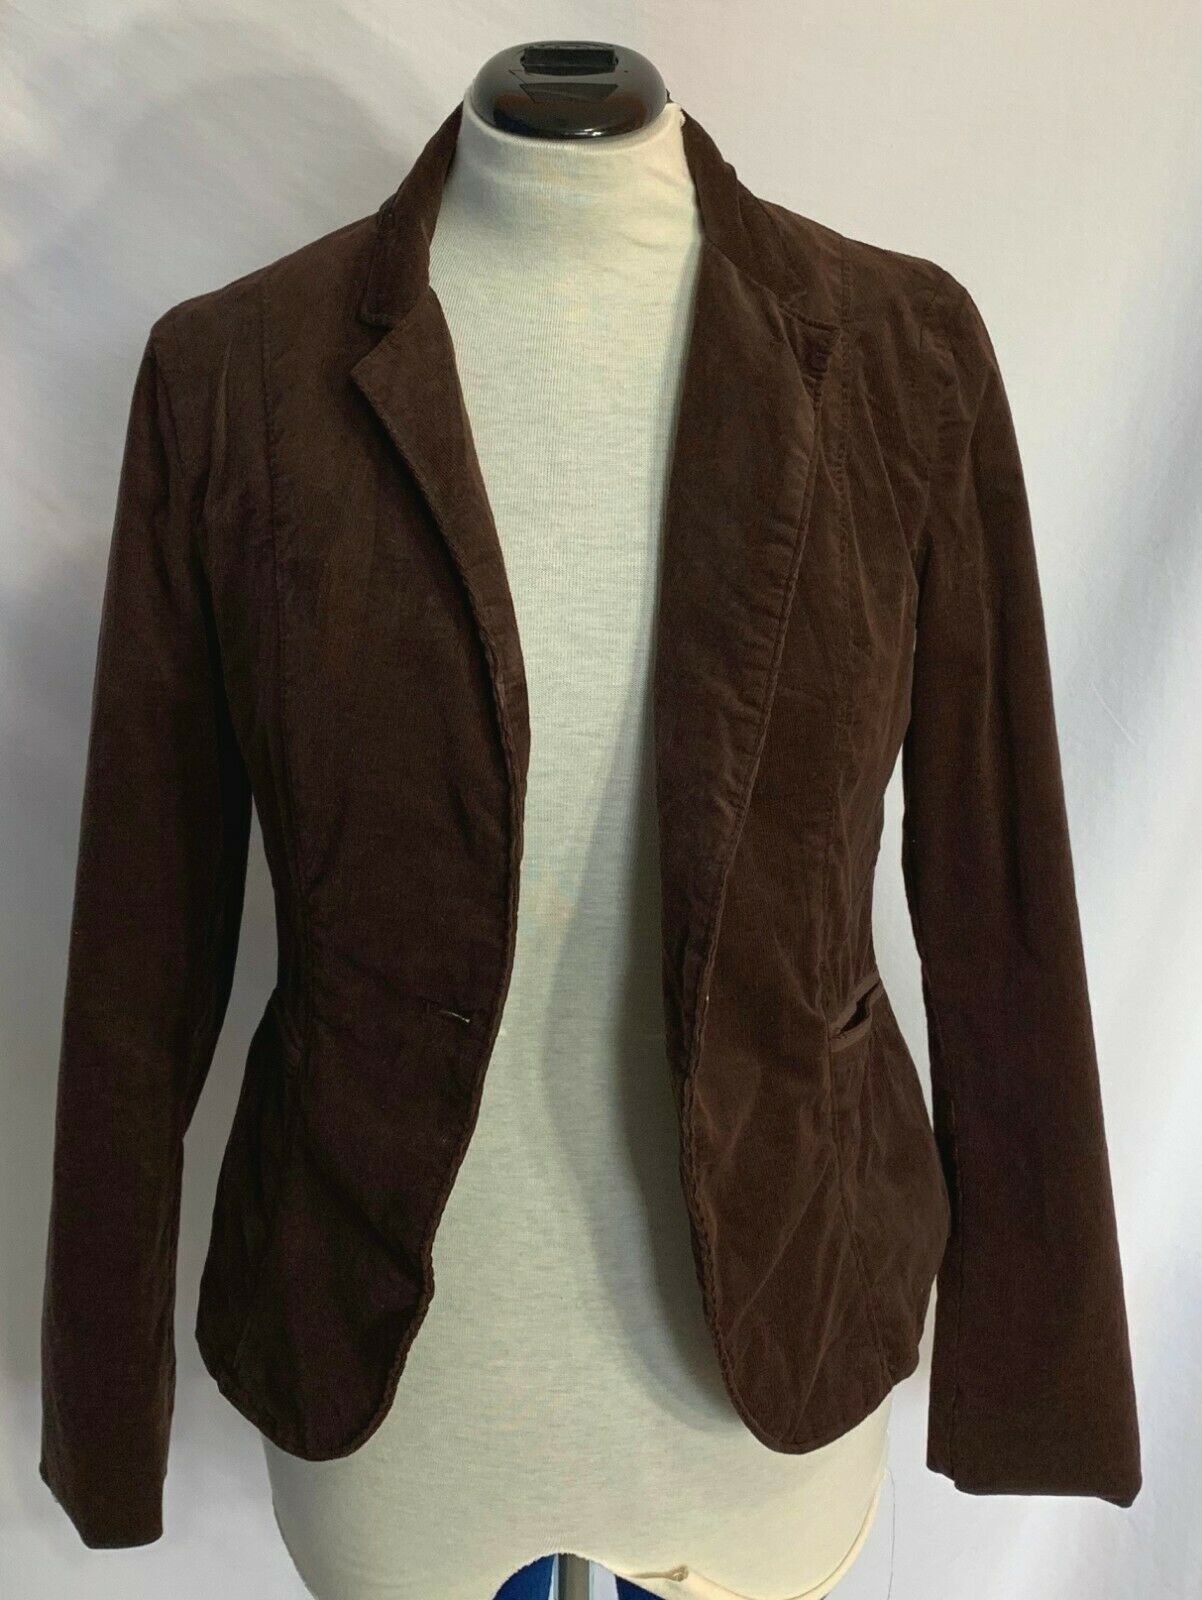 Calvin Klein Jeans Brown Corduroy Blazer Jacket Womens Size Medium 1 Button